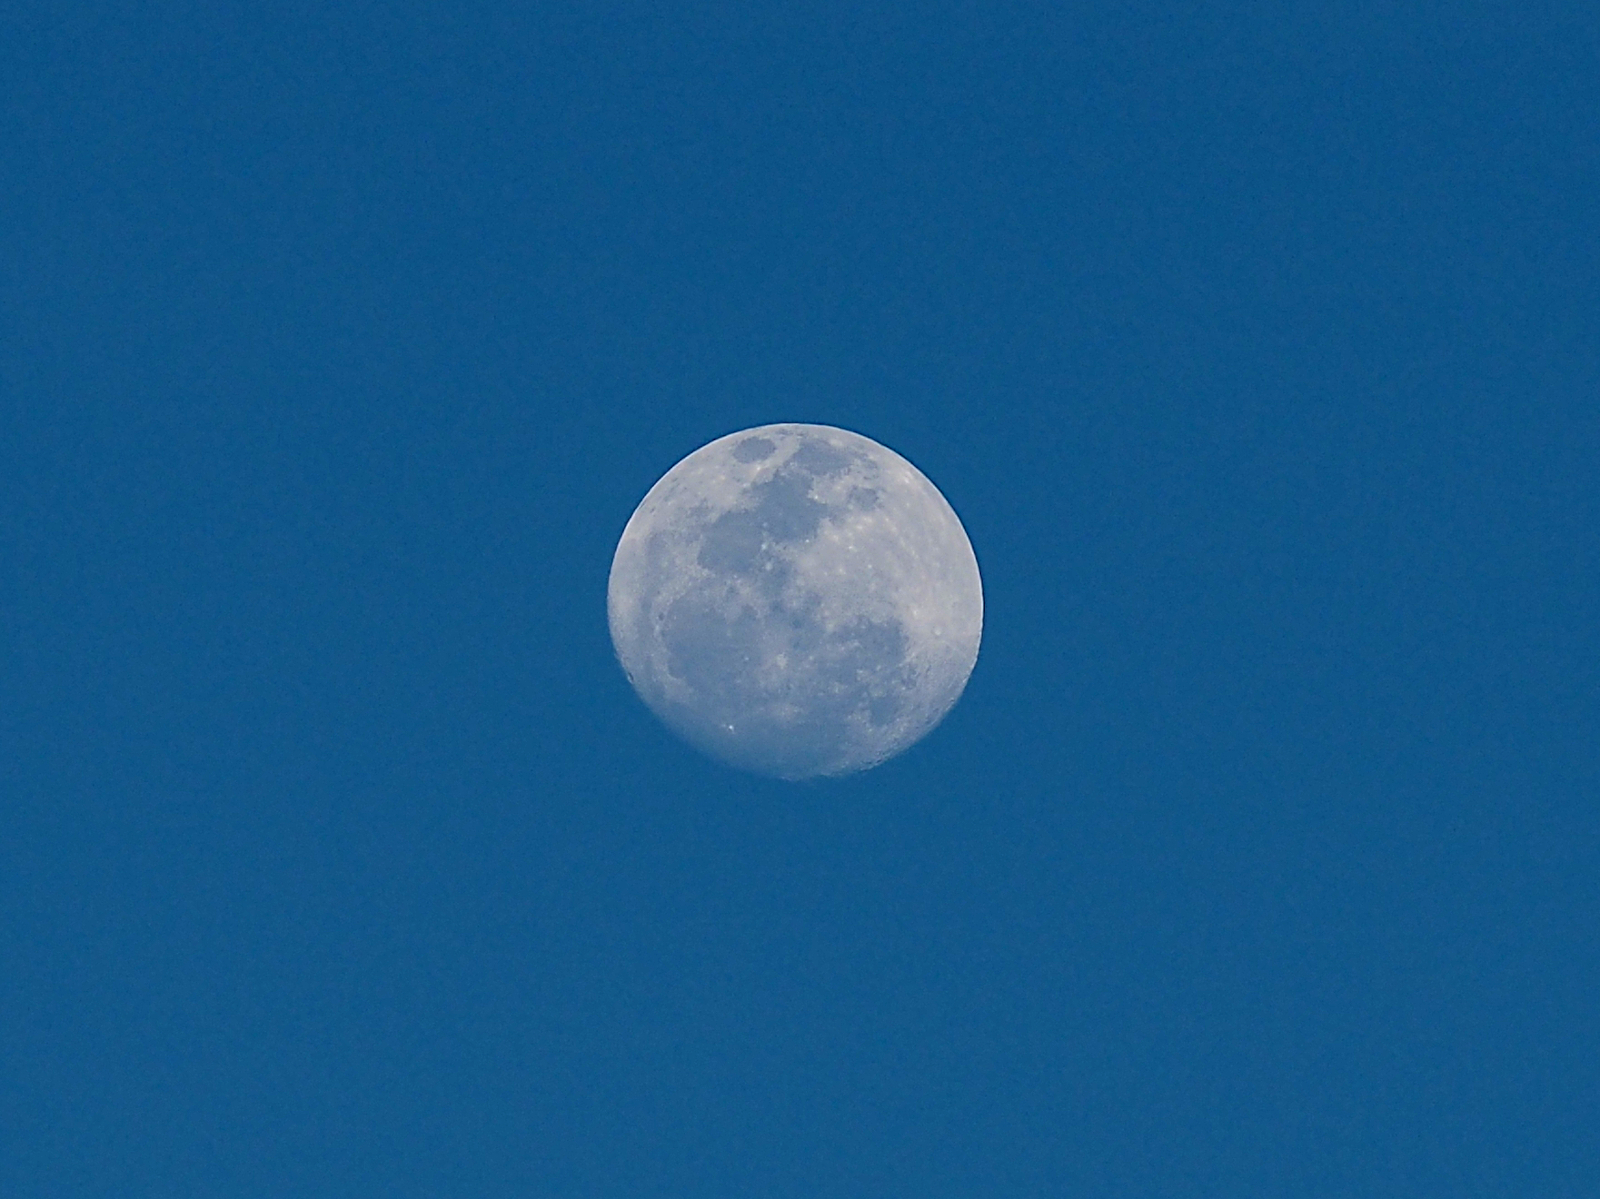 Picture of the moon during the day